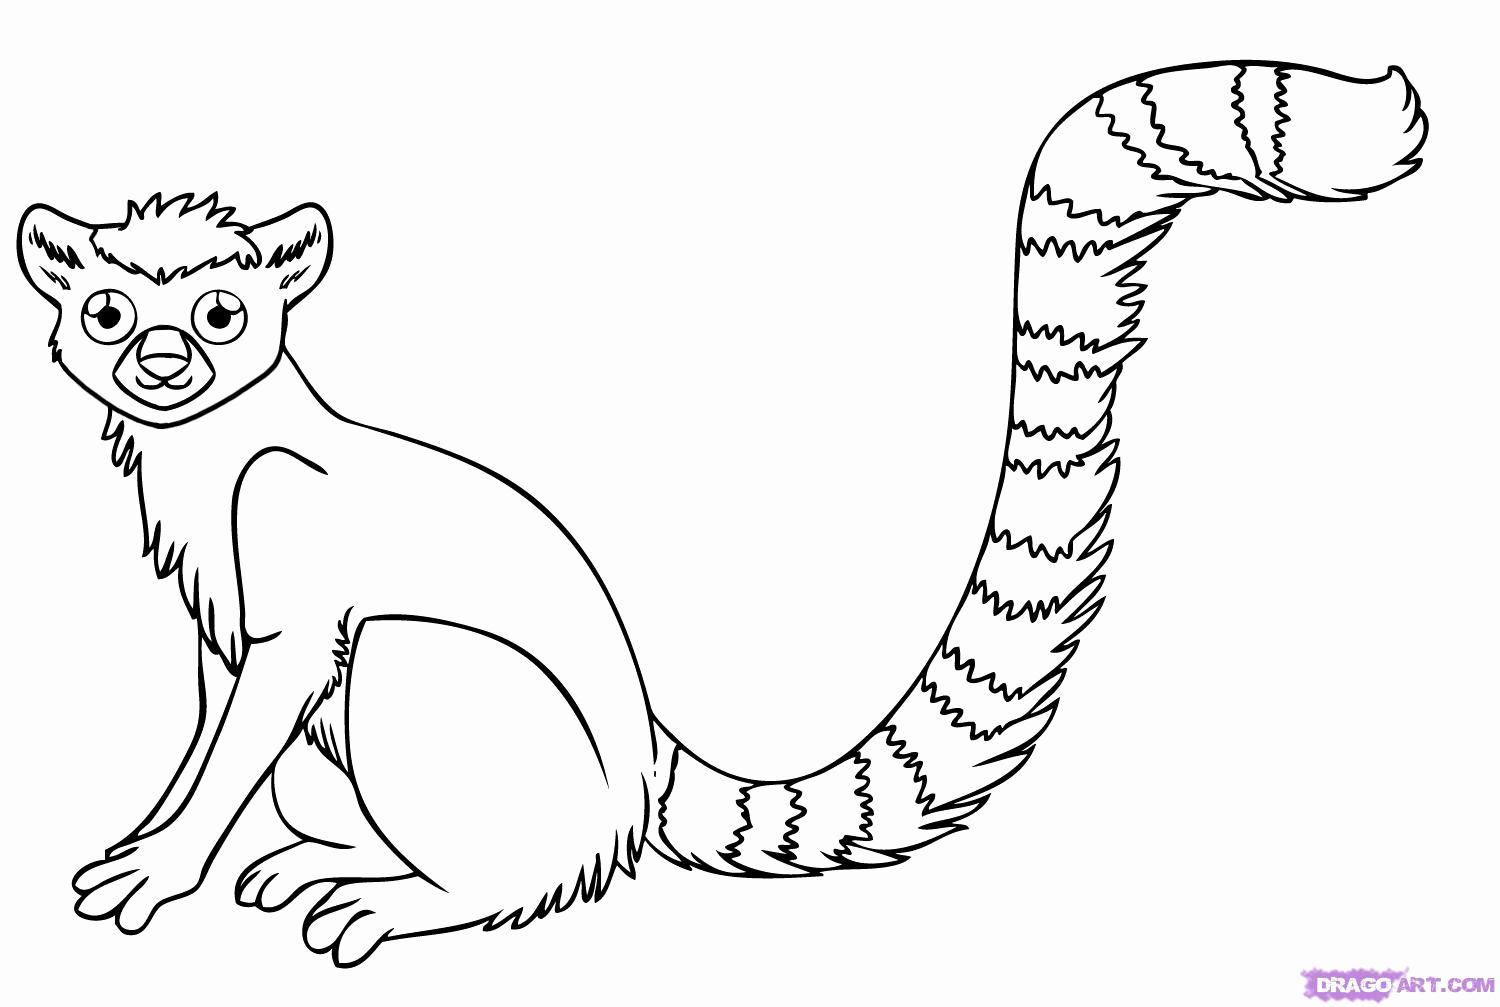 Rainforest Animal Coloring Pages Inspirational Realistic